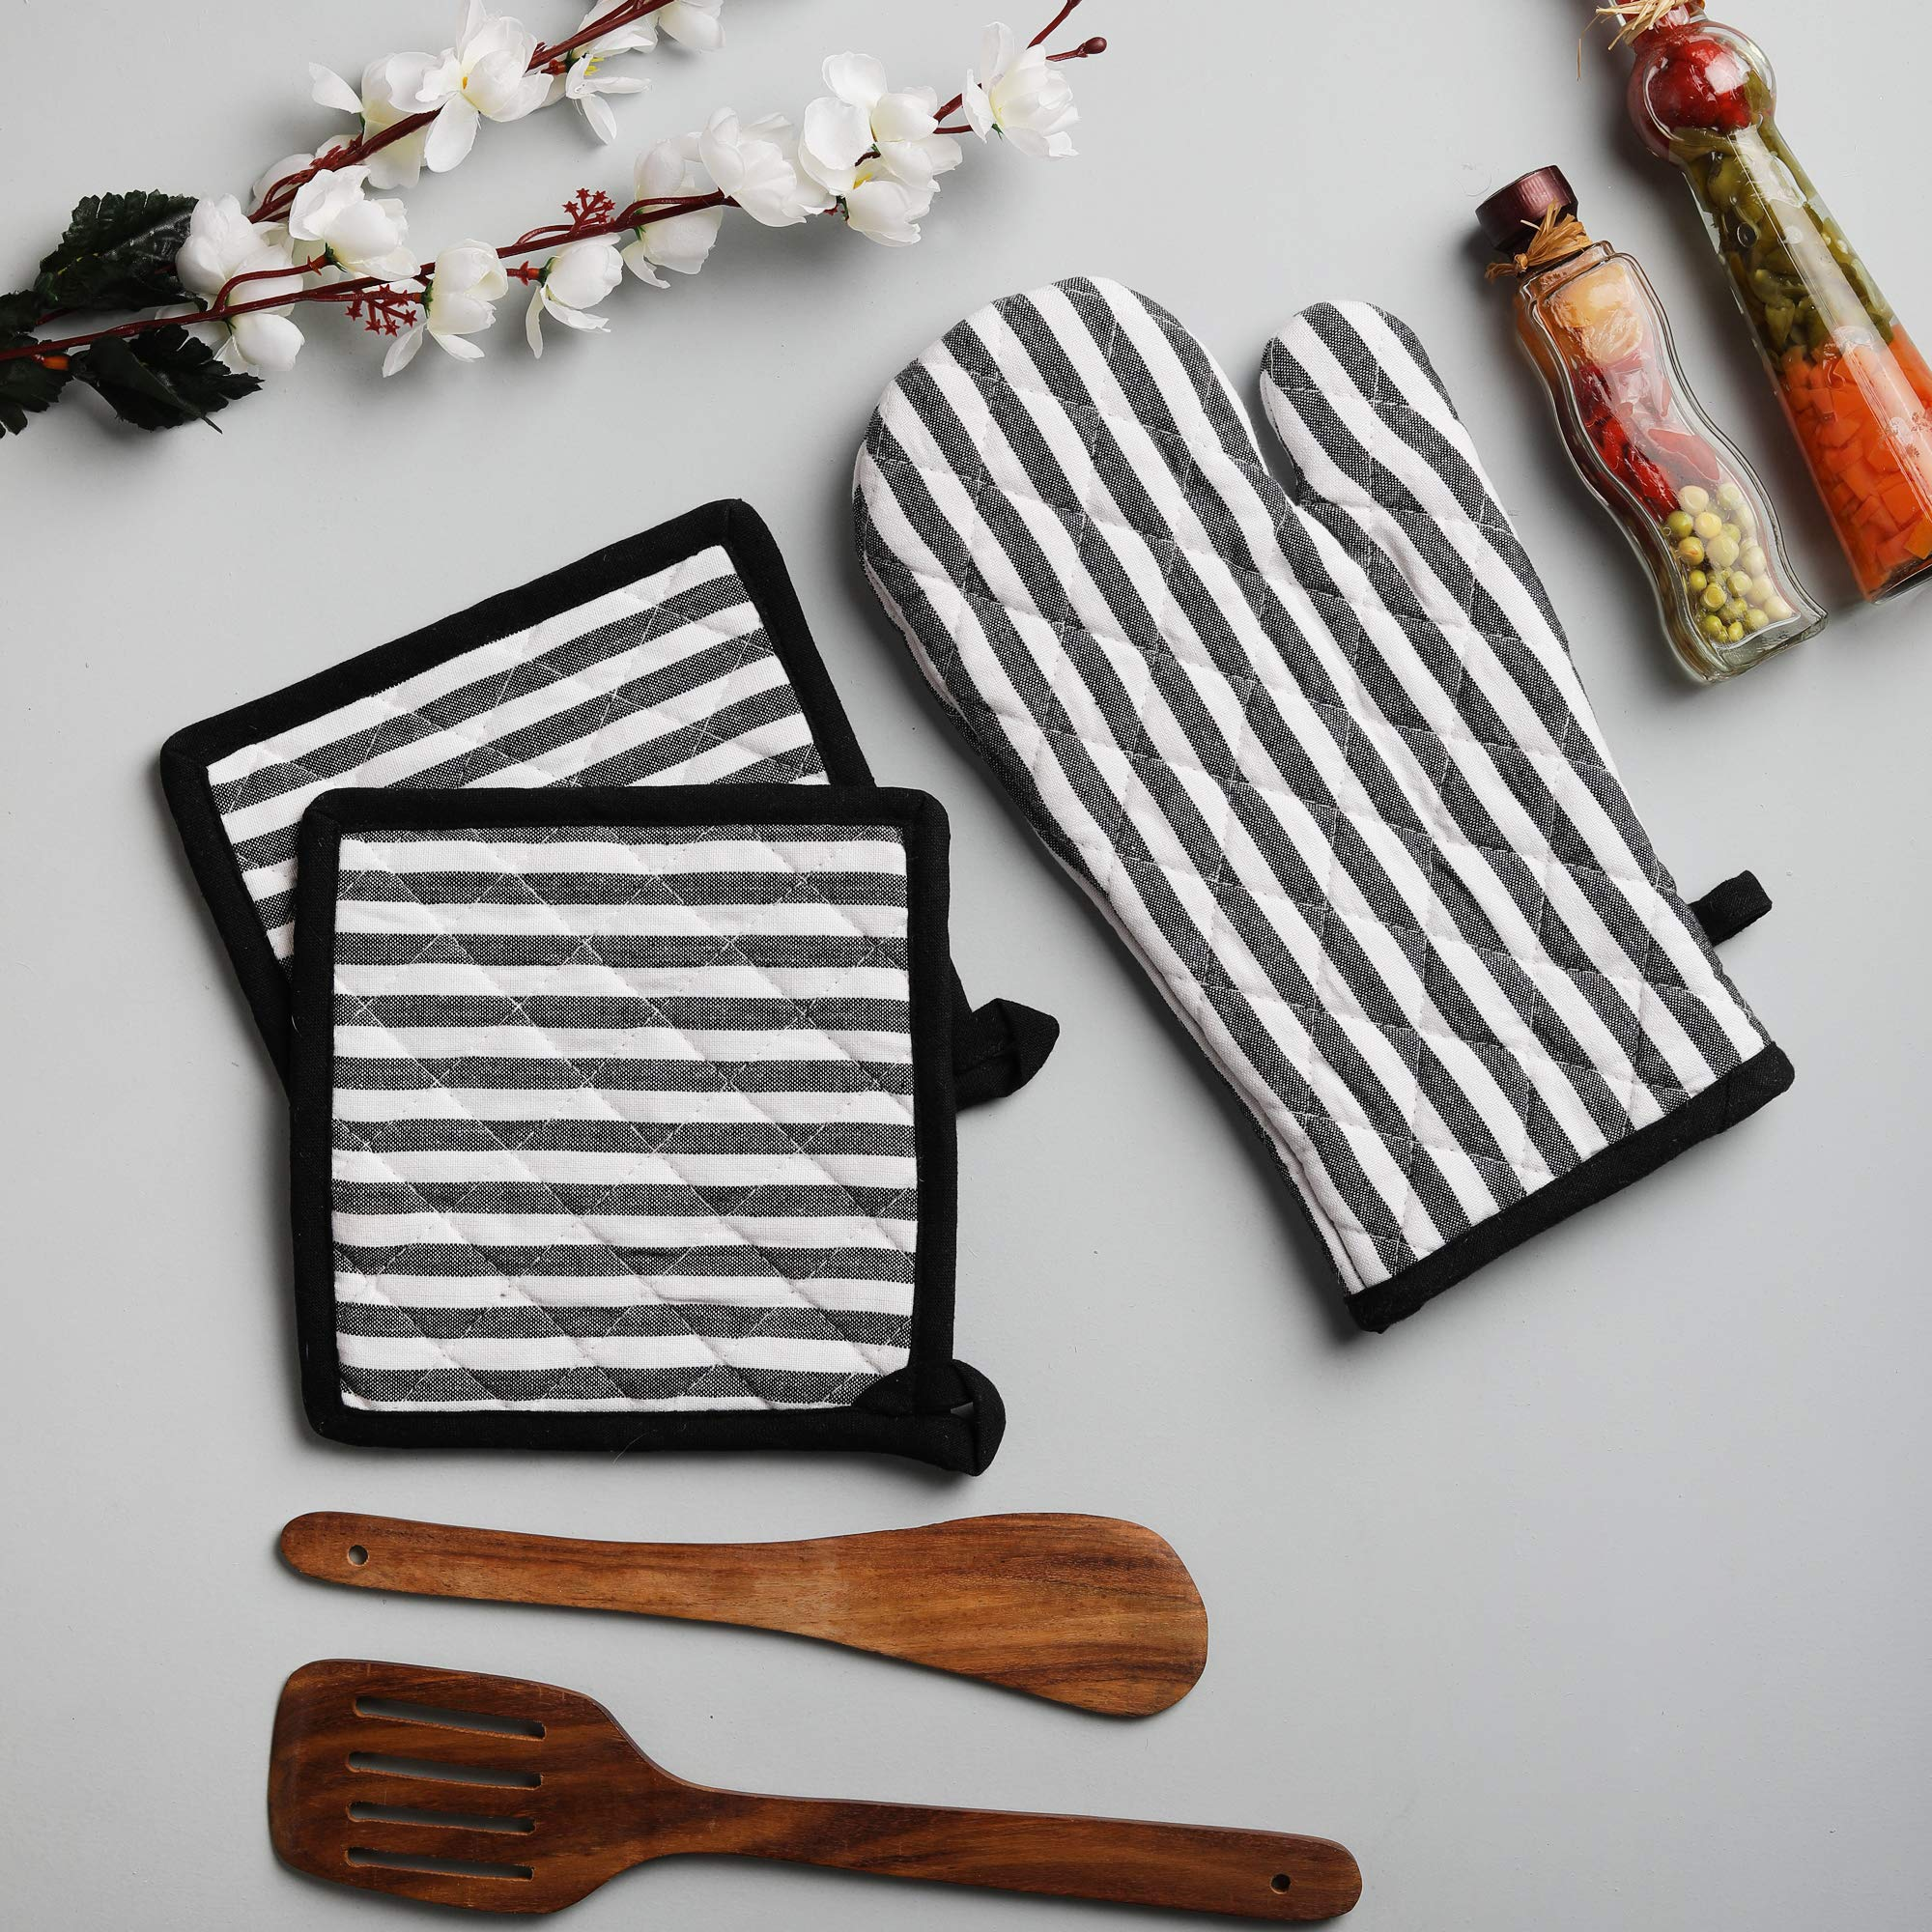 Cotton Oven Mitten and Pot Holders, 3 Piece Set, Black & White Stripe For Everyday Use